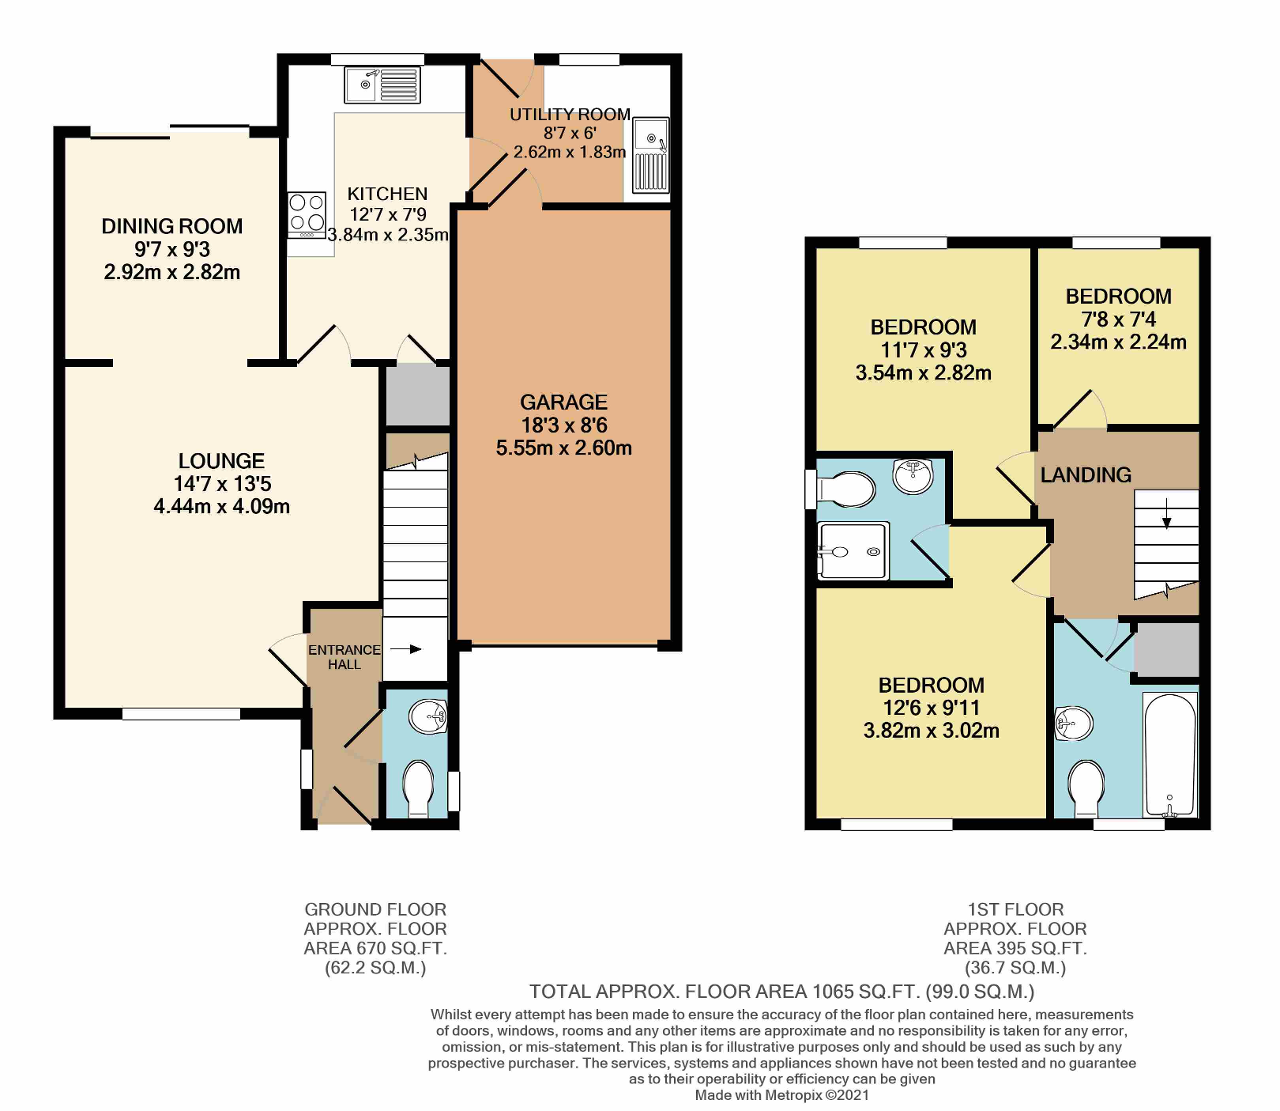 Floorplan of Harold Close, North Bersted, Bognor Regis, West Sussex, PO21 5UL